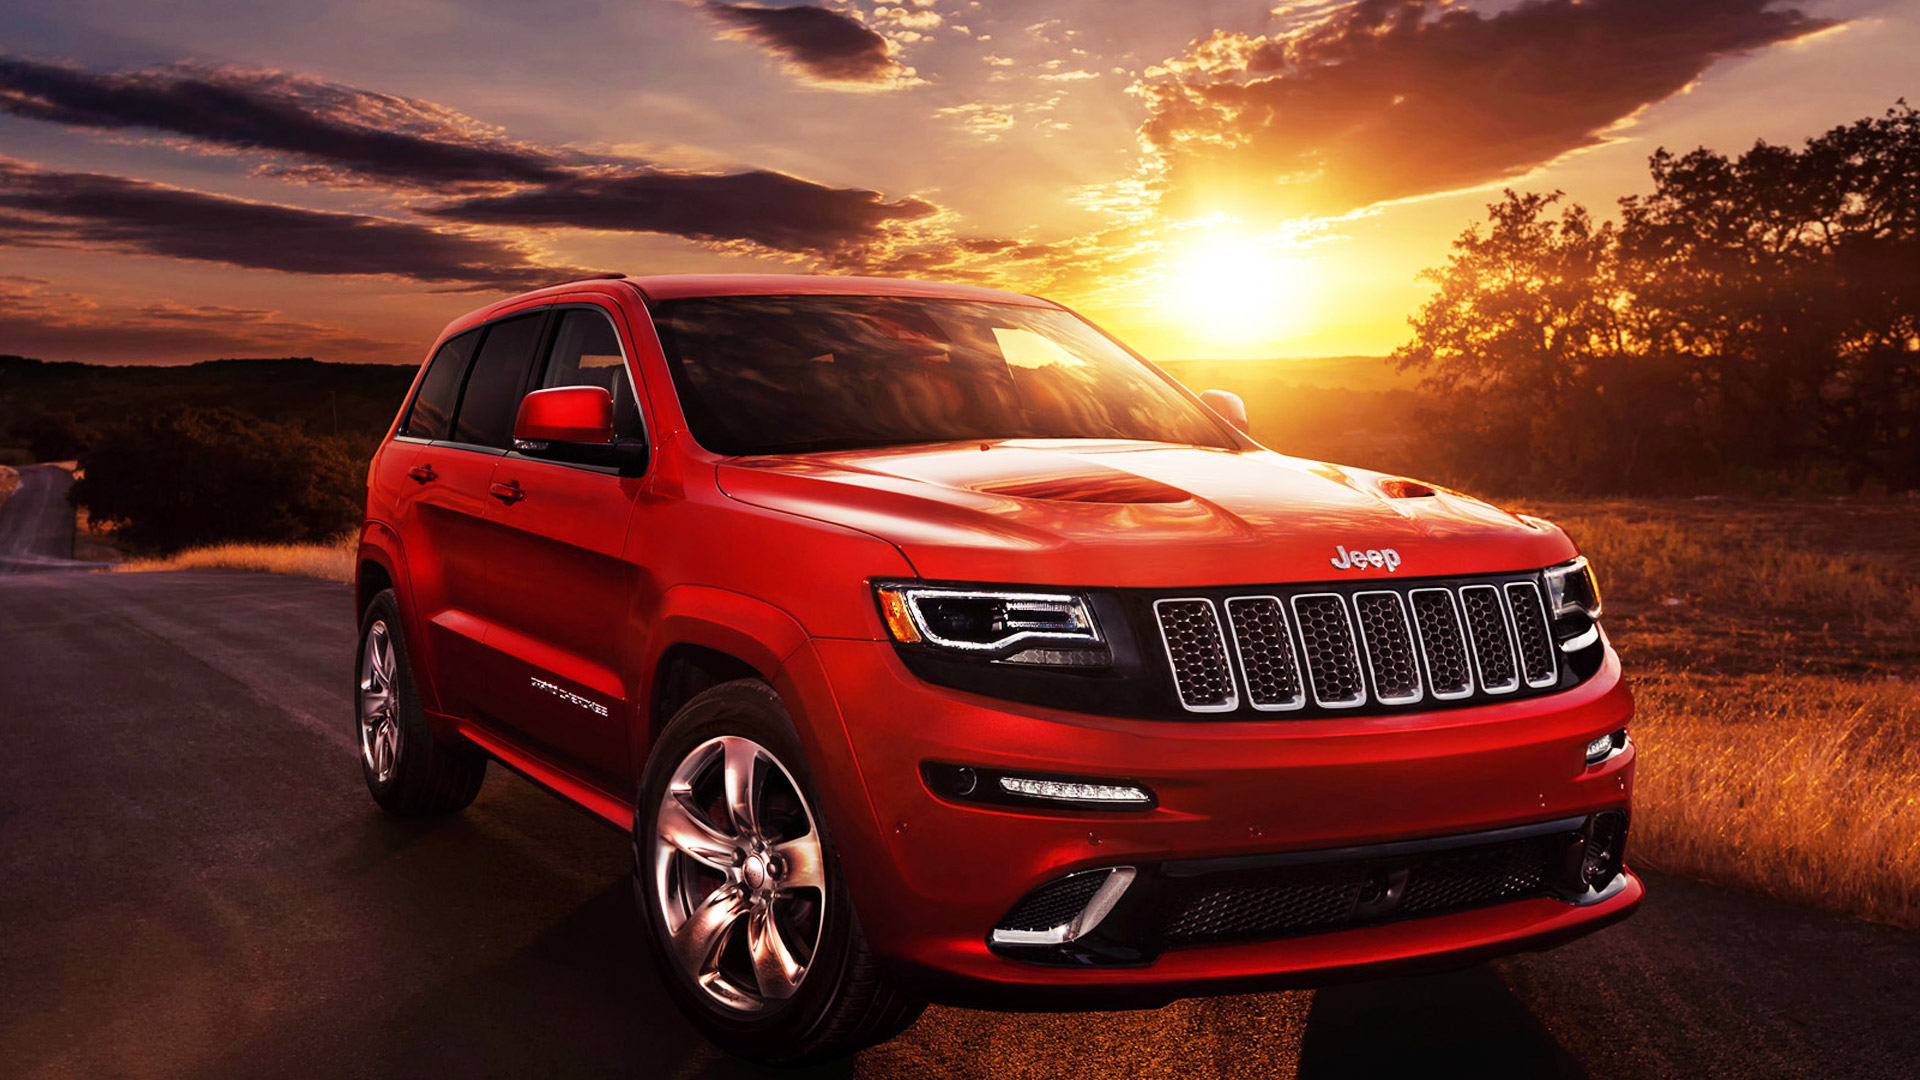 Excellent Jeep Grand Cherokee SRT Wallpaper Full HD Pictures